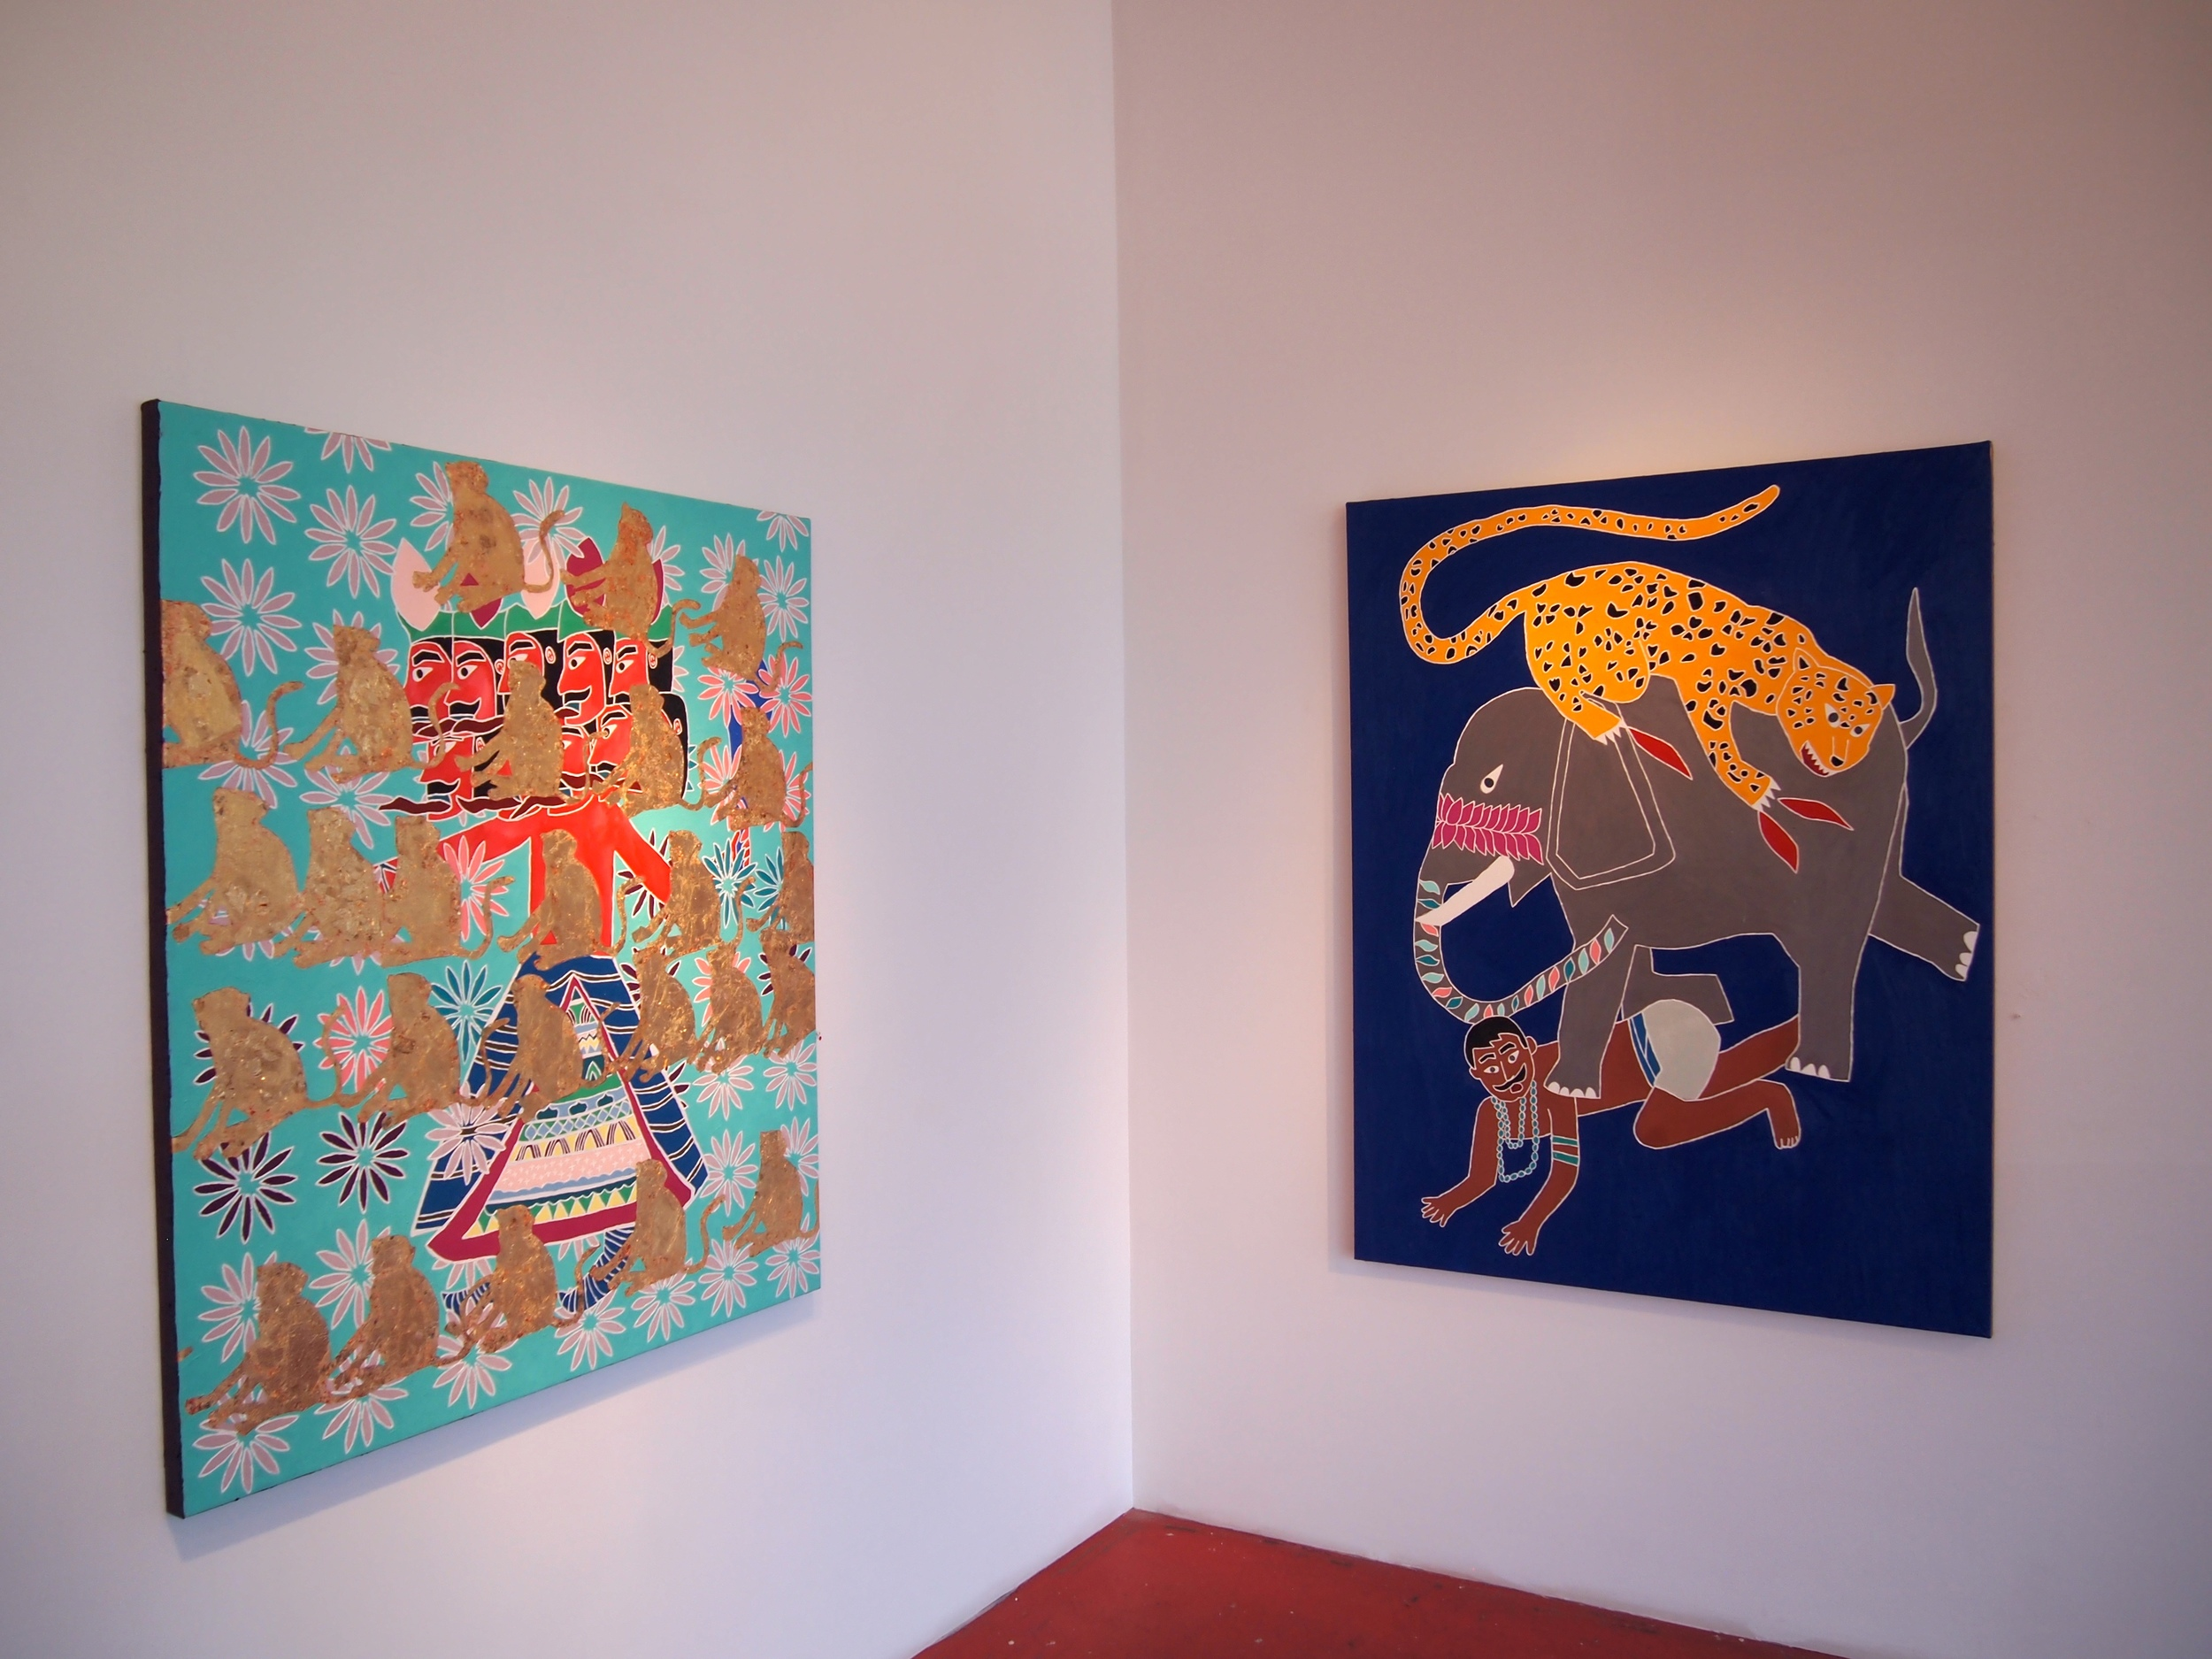 Installation view at G Gallery, Houston TX 2013